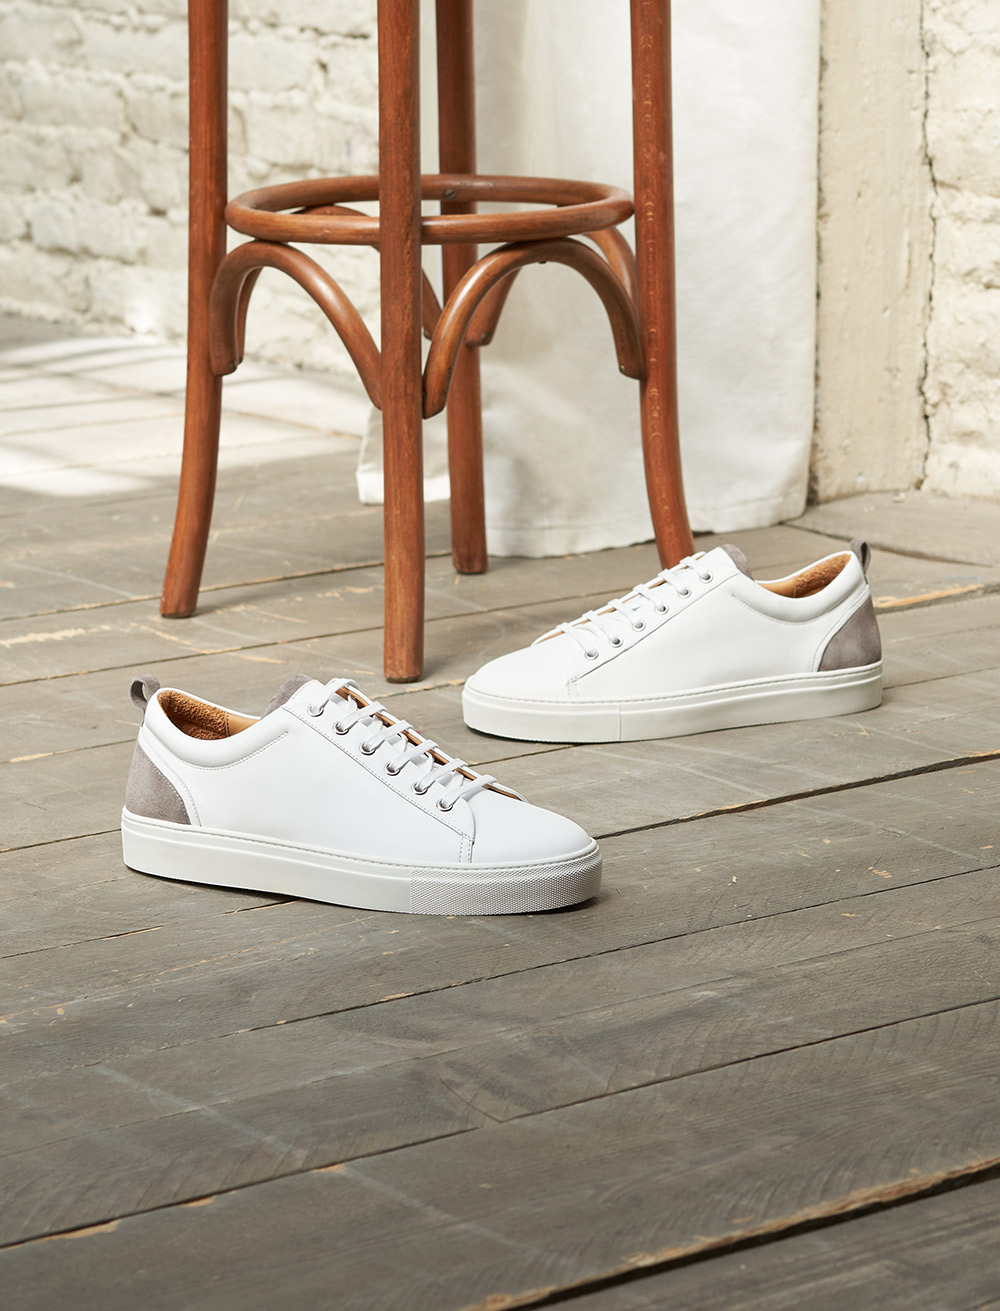 Sneakers Luka - White and grey